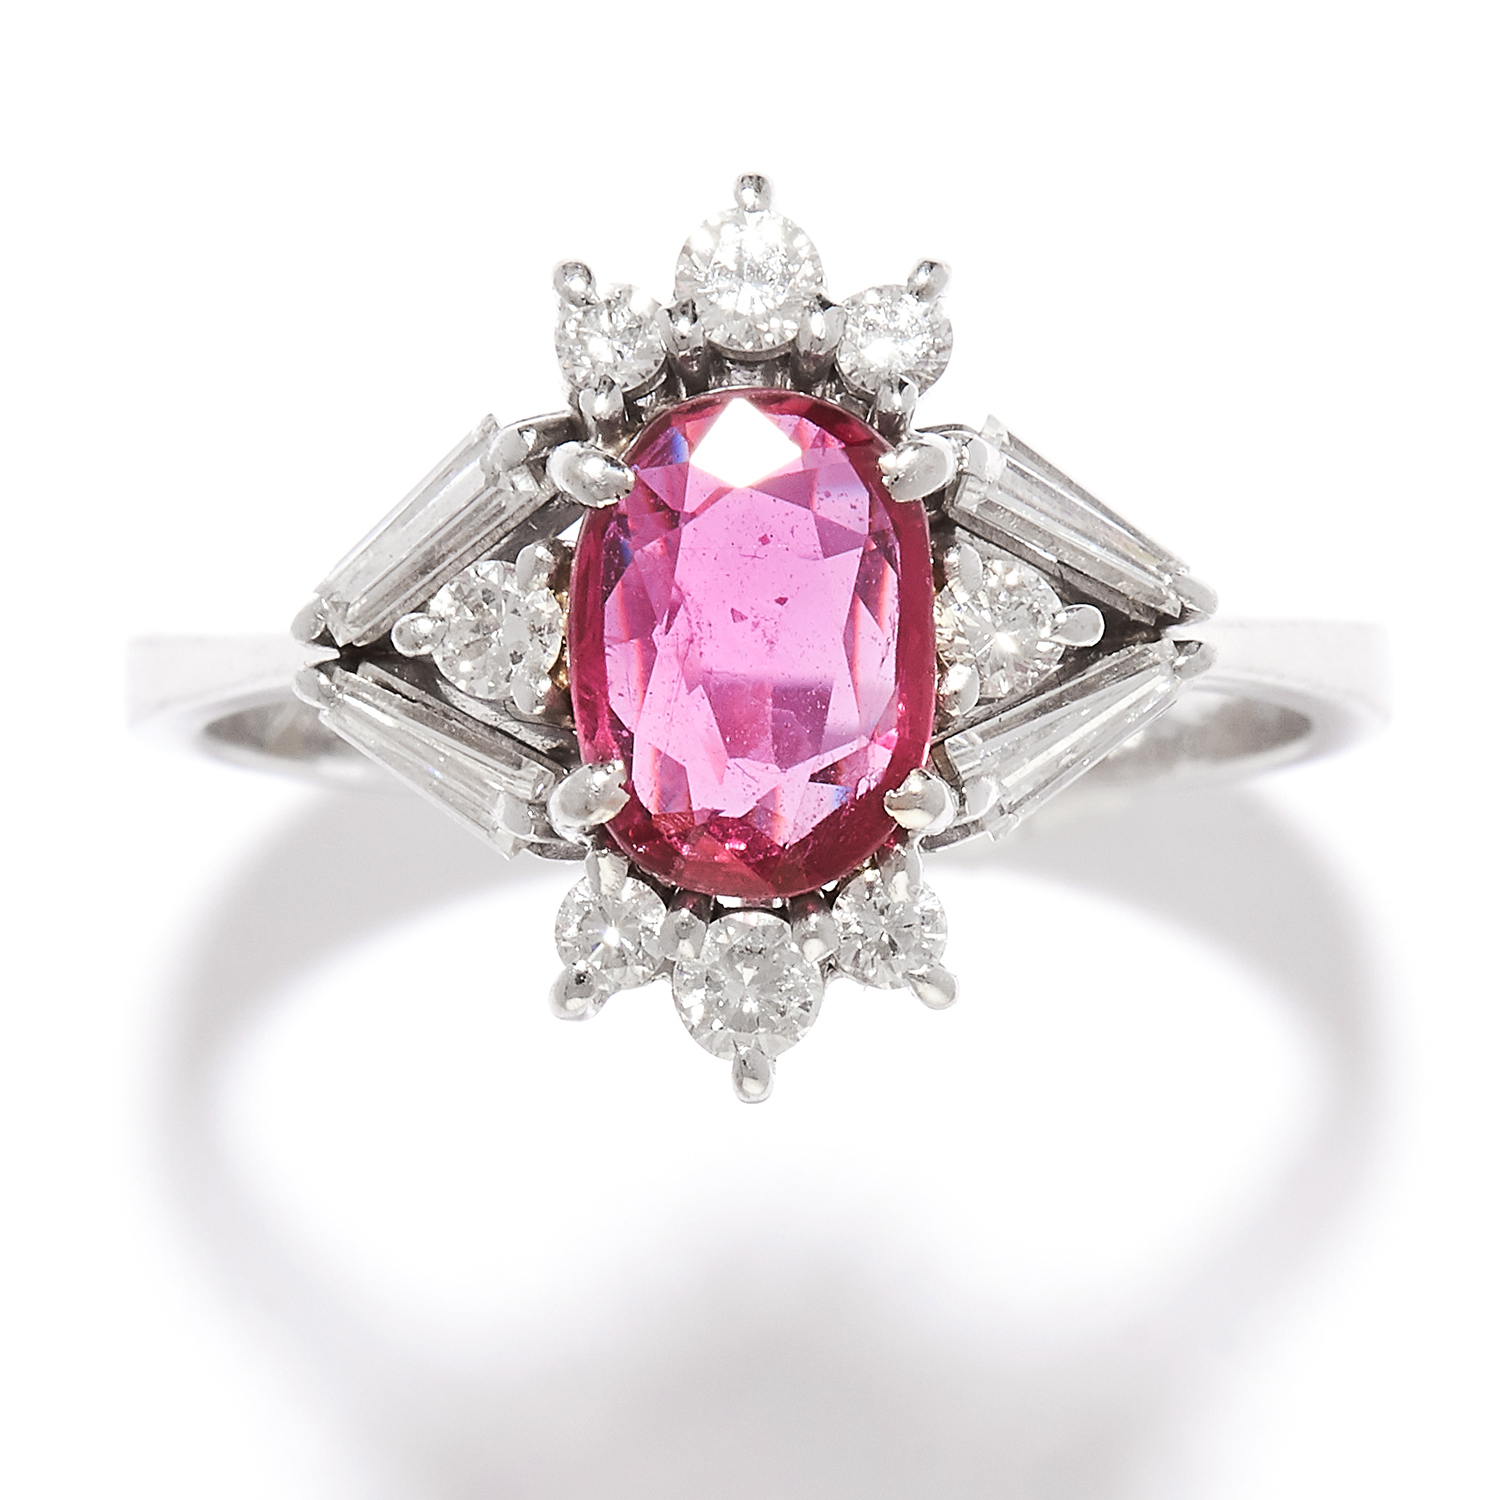 RUBY AND DIAMOND RING, H.STERN in 18ct white gold, set with an oval cut ruby of approximately 0.59